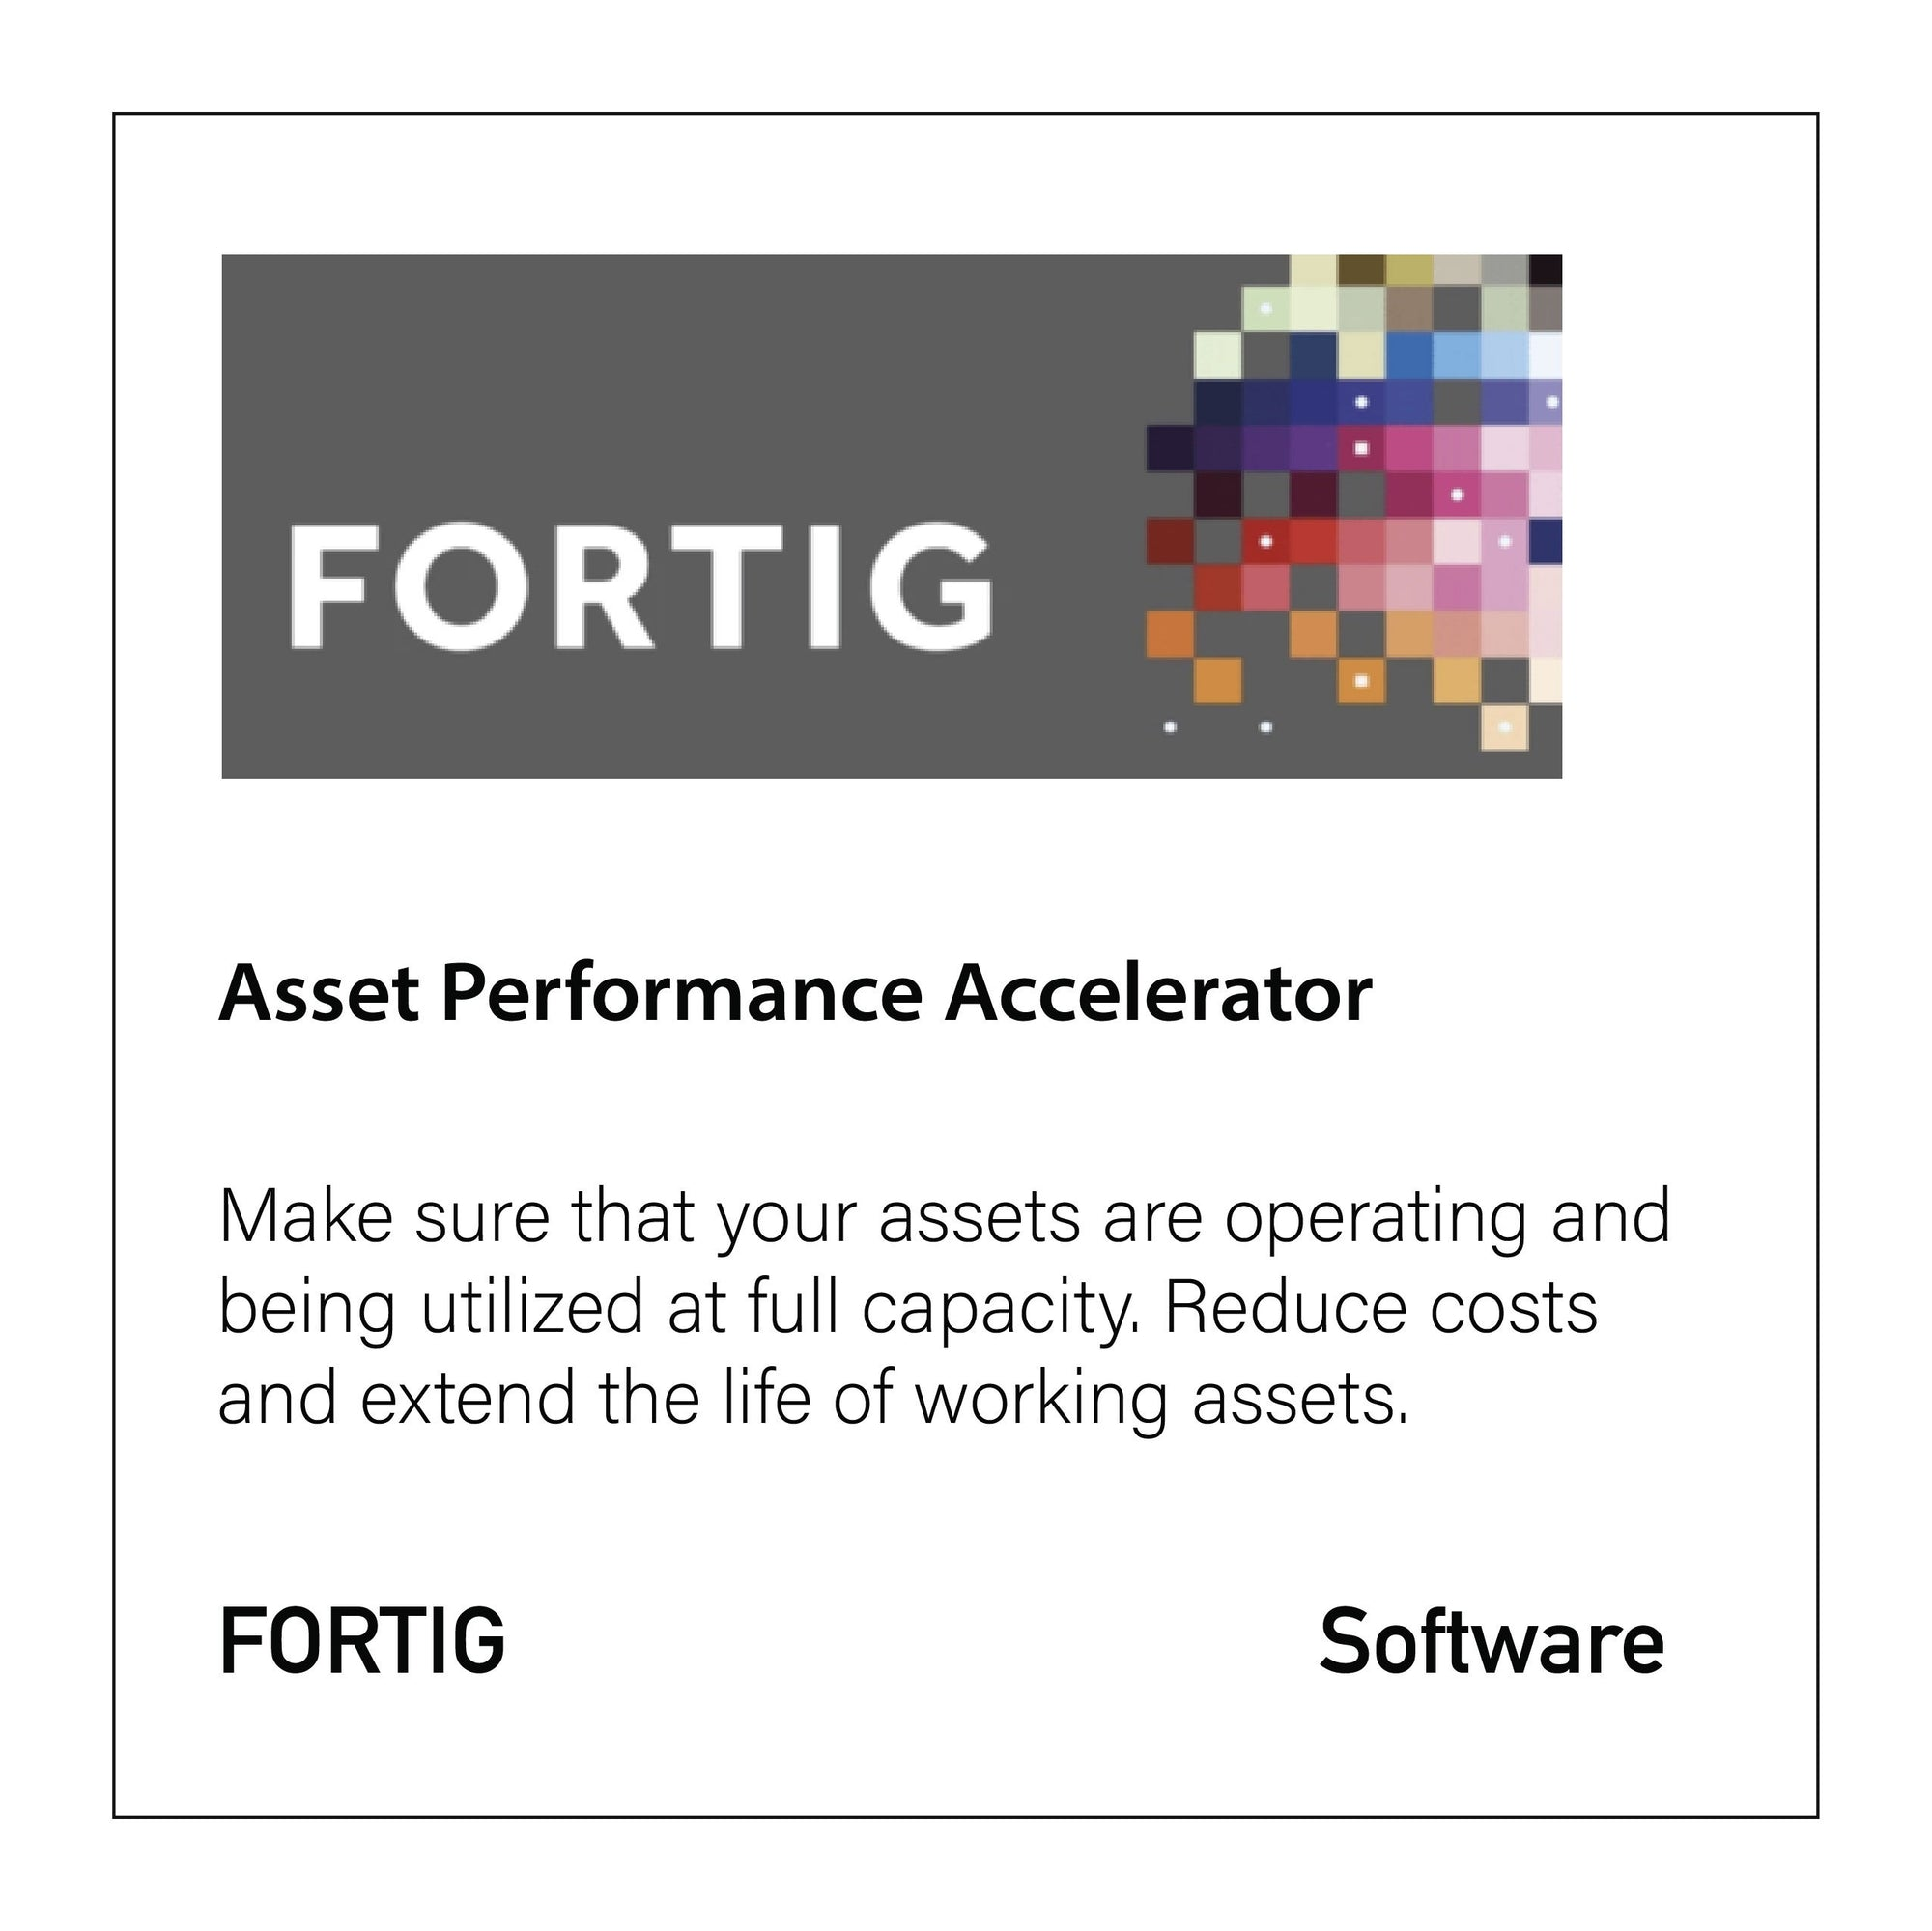 FORTIG Asset Performance Accelerator - CloseReach Ltd